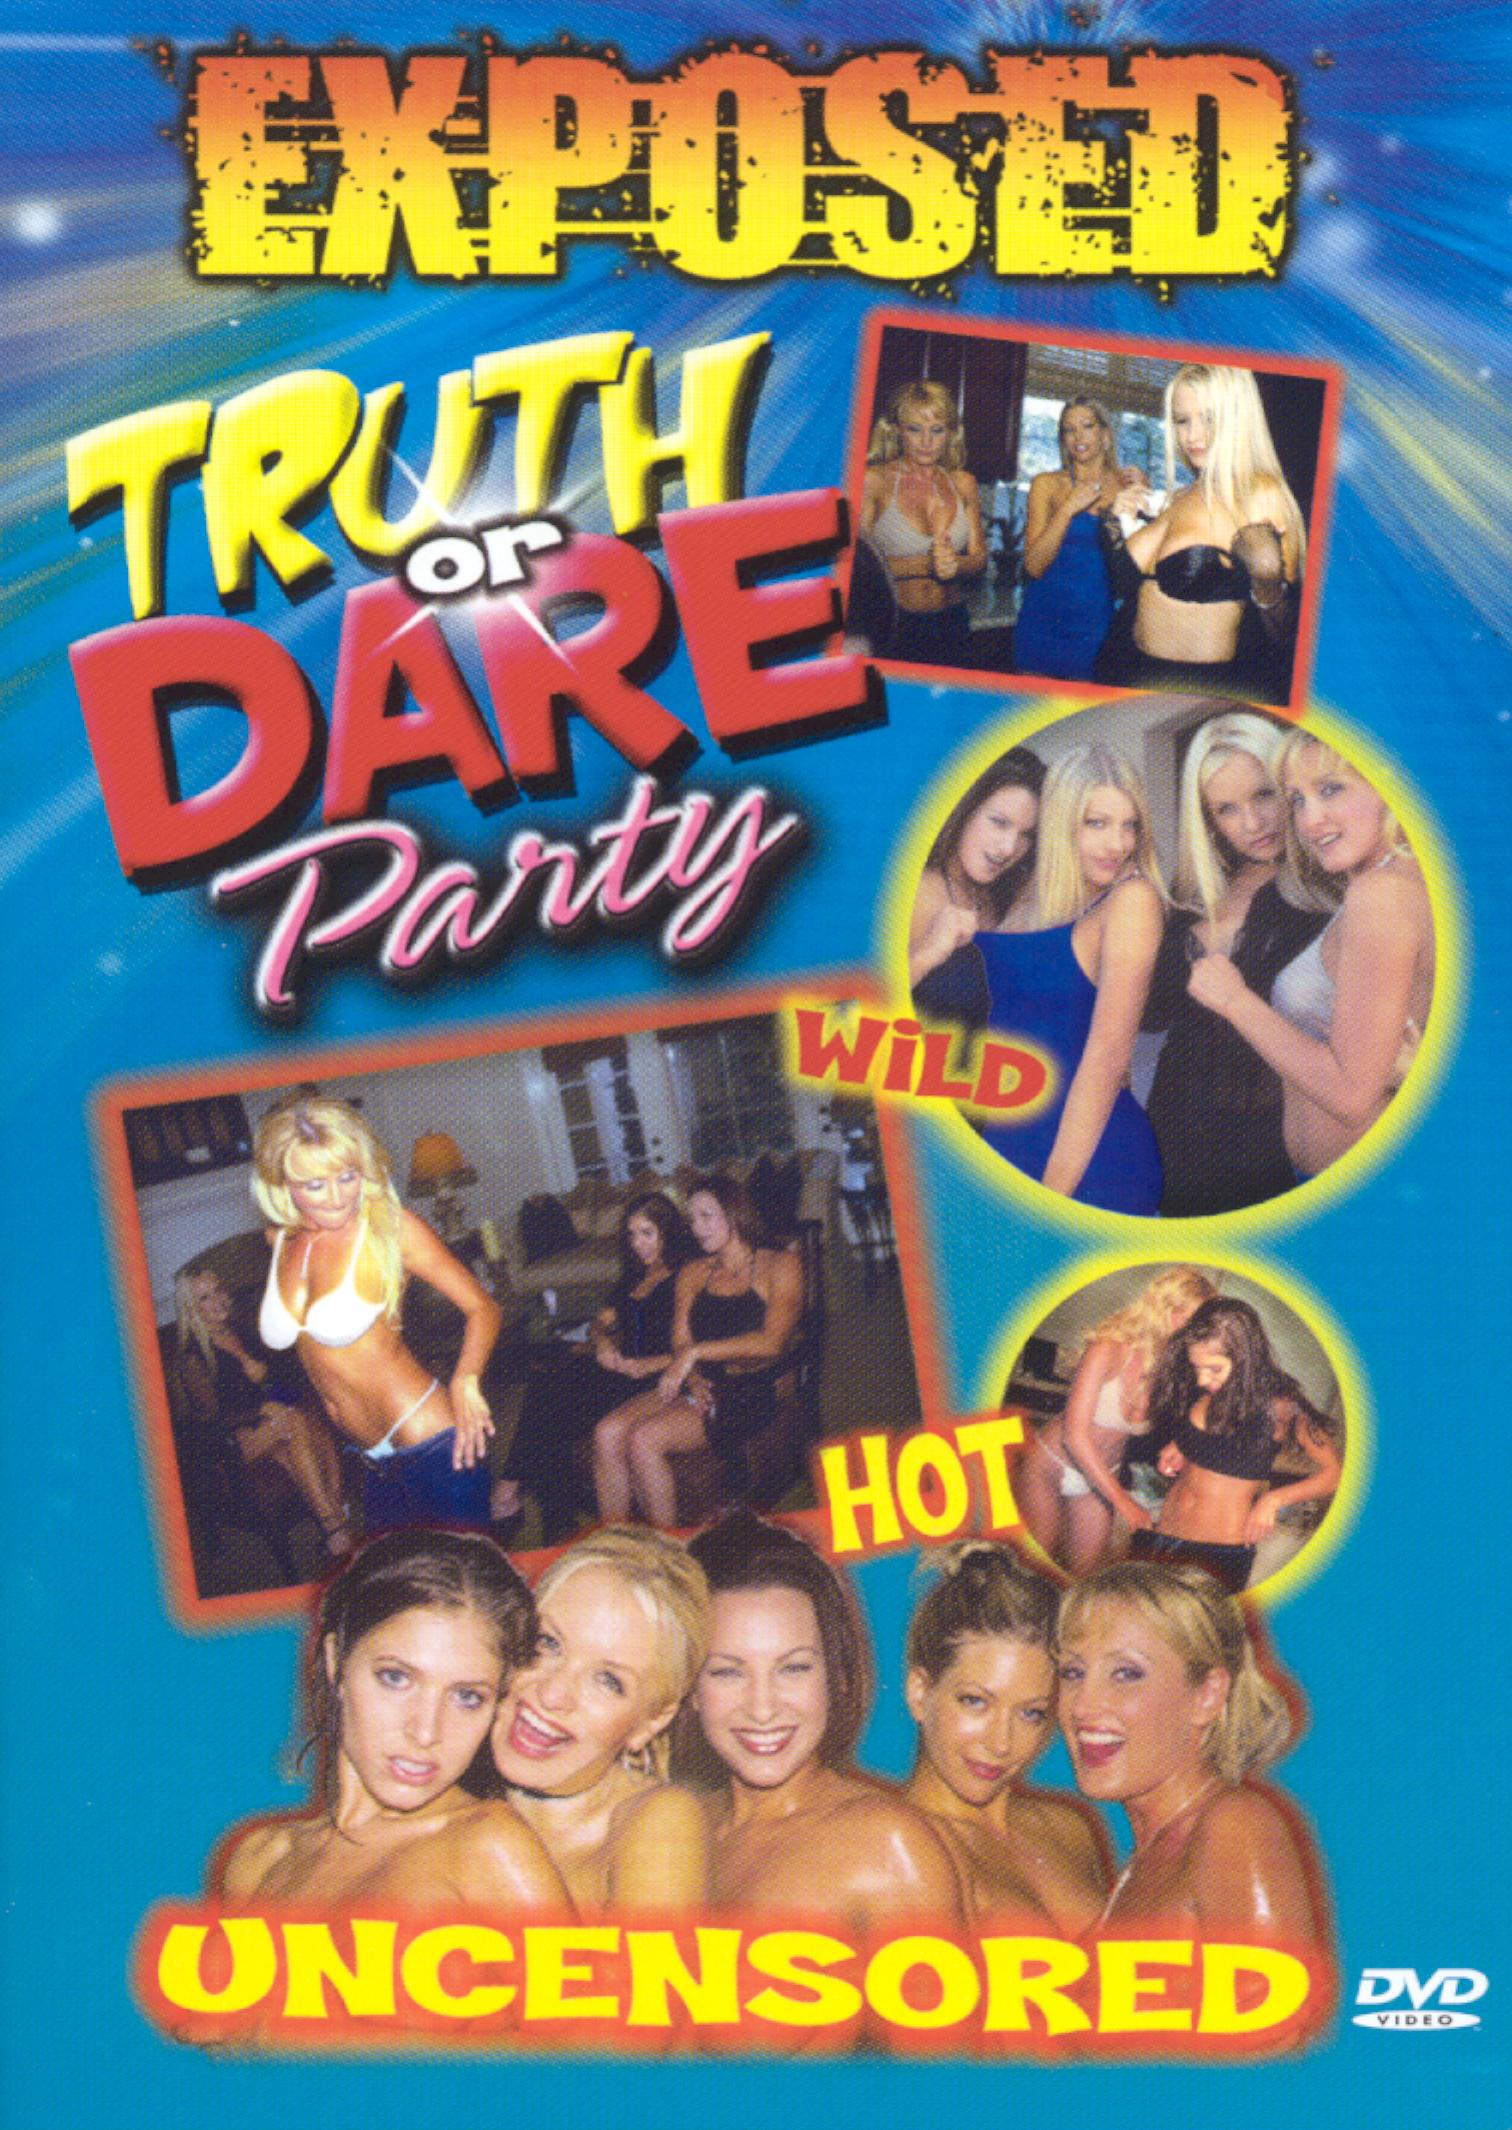 Playboy Exposed: Truth or Dare Party